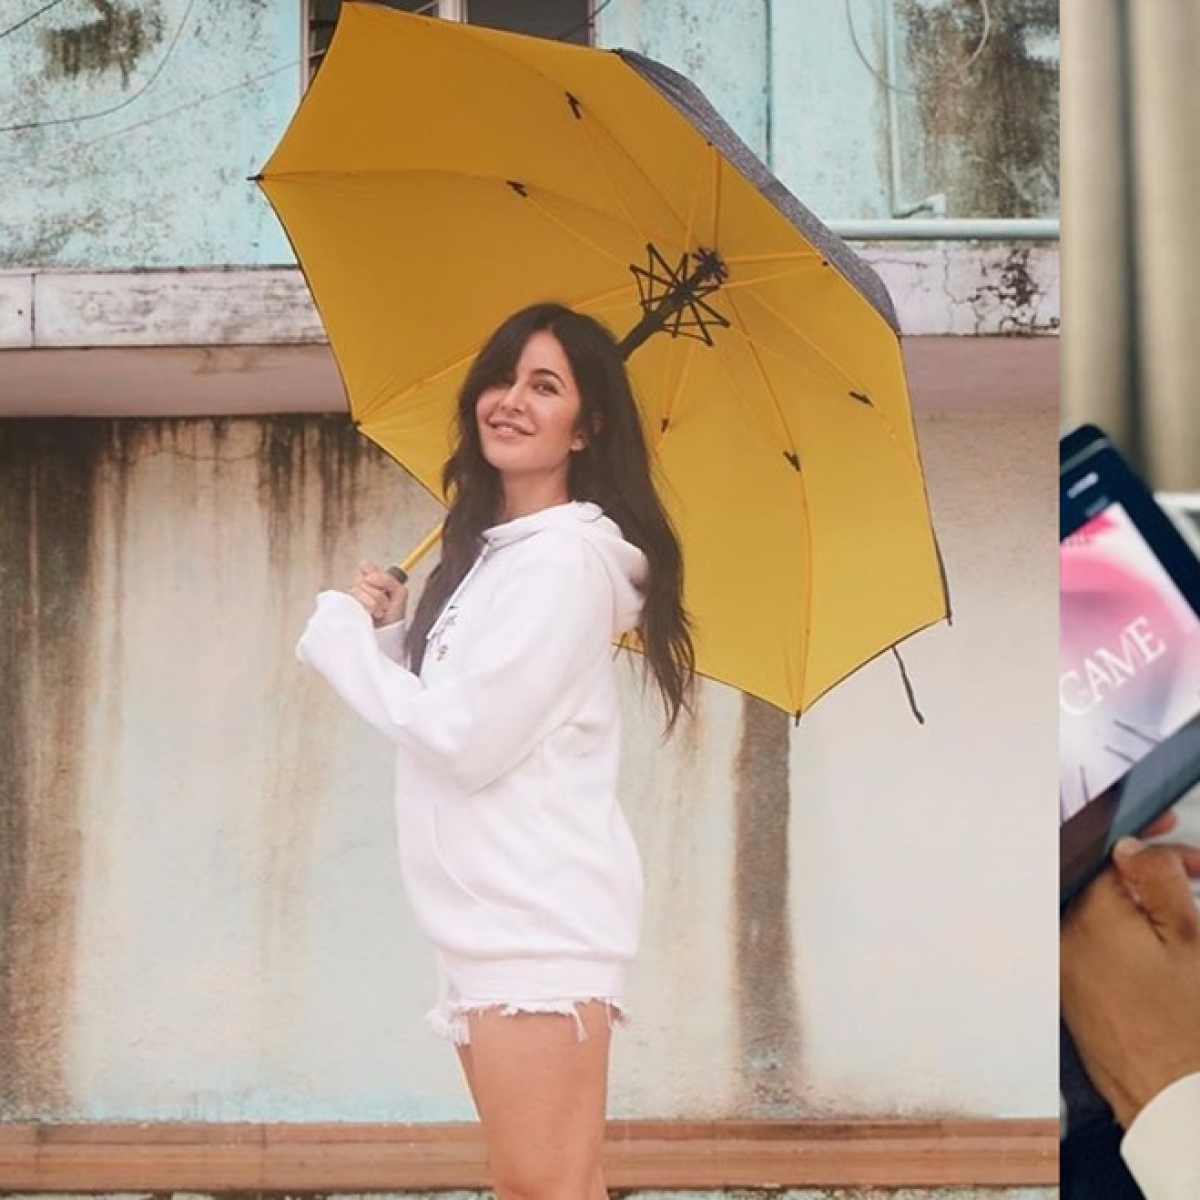 Did Katrina Kaif wear rumoured beau Vicky Kaushal's white hoodie to pose in the rain?